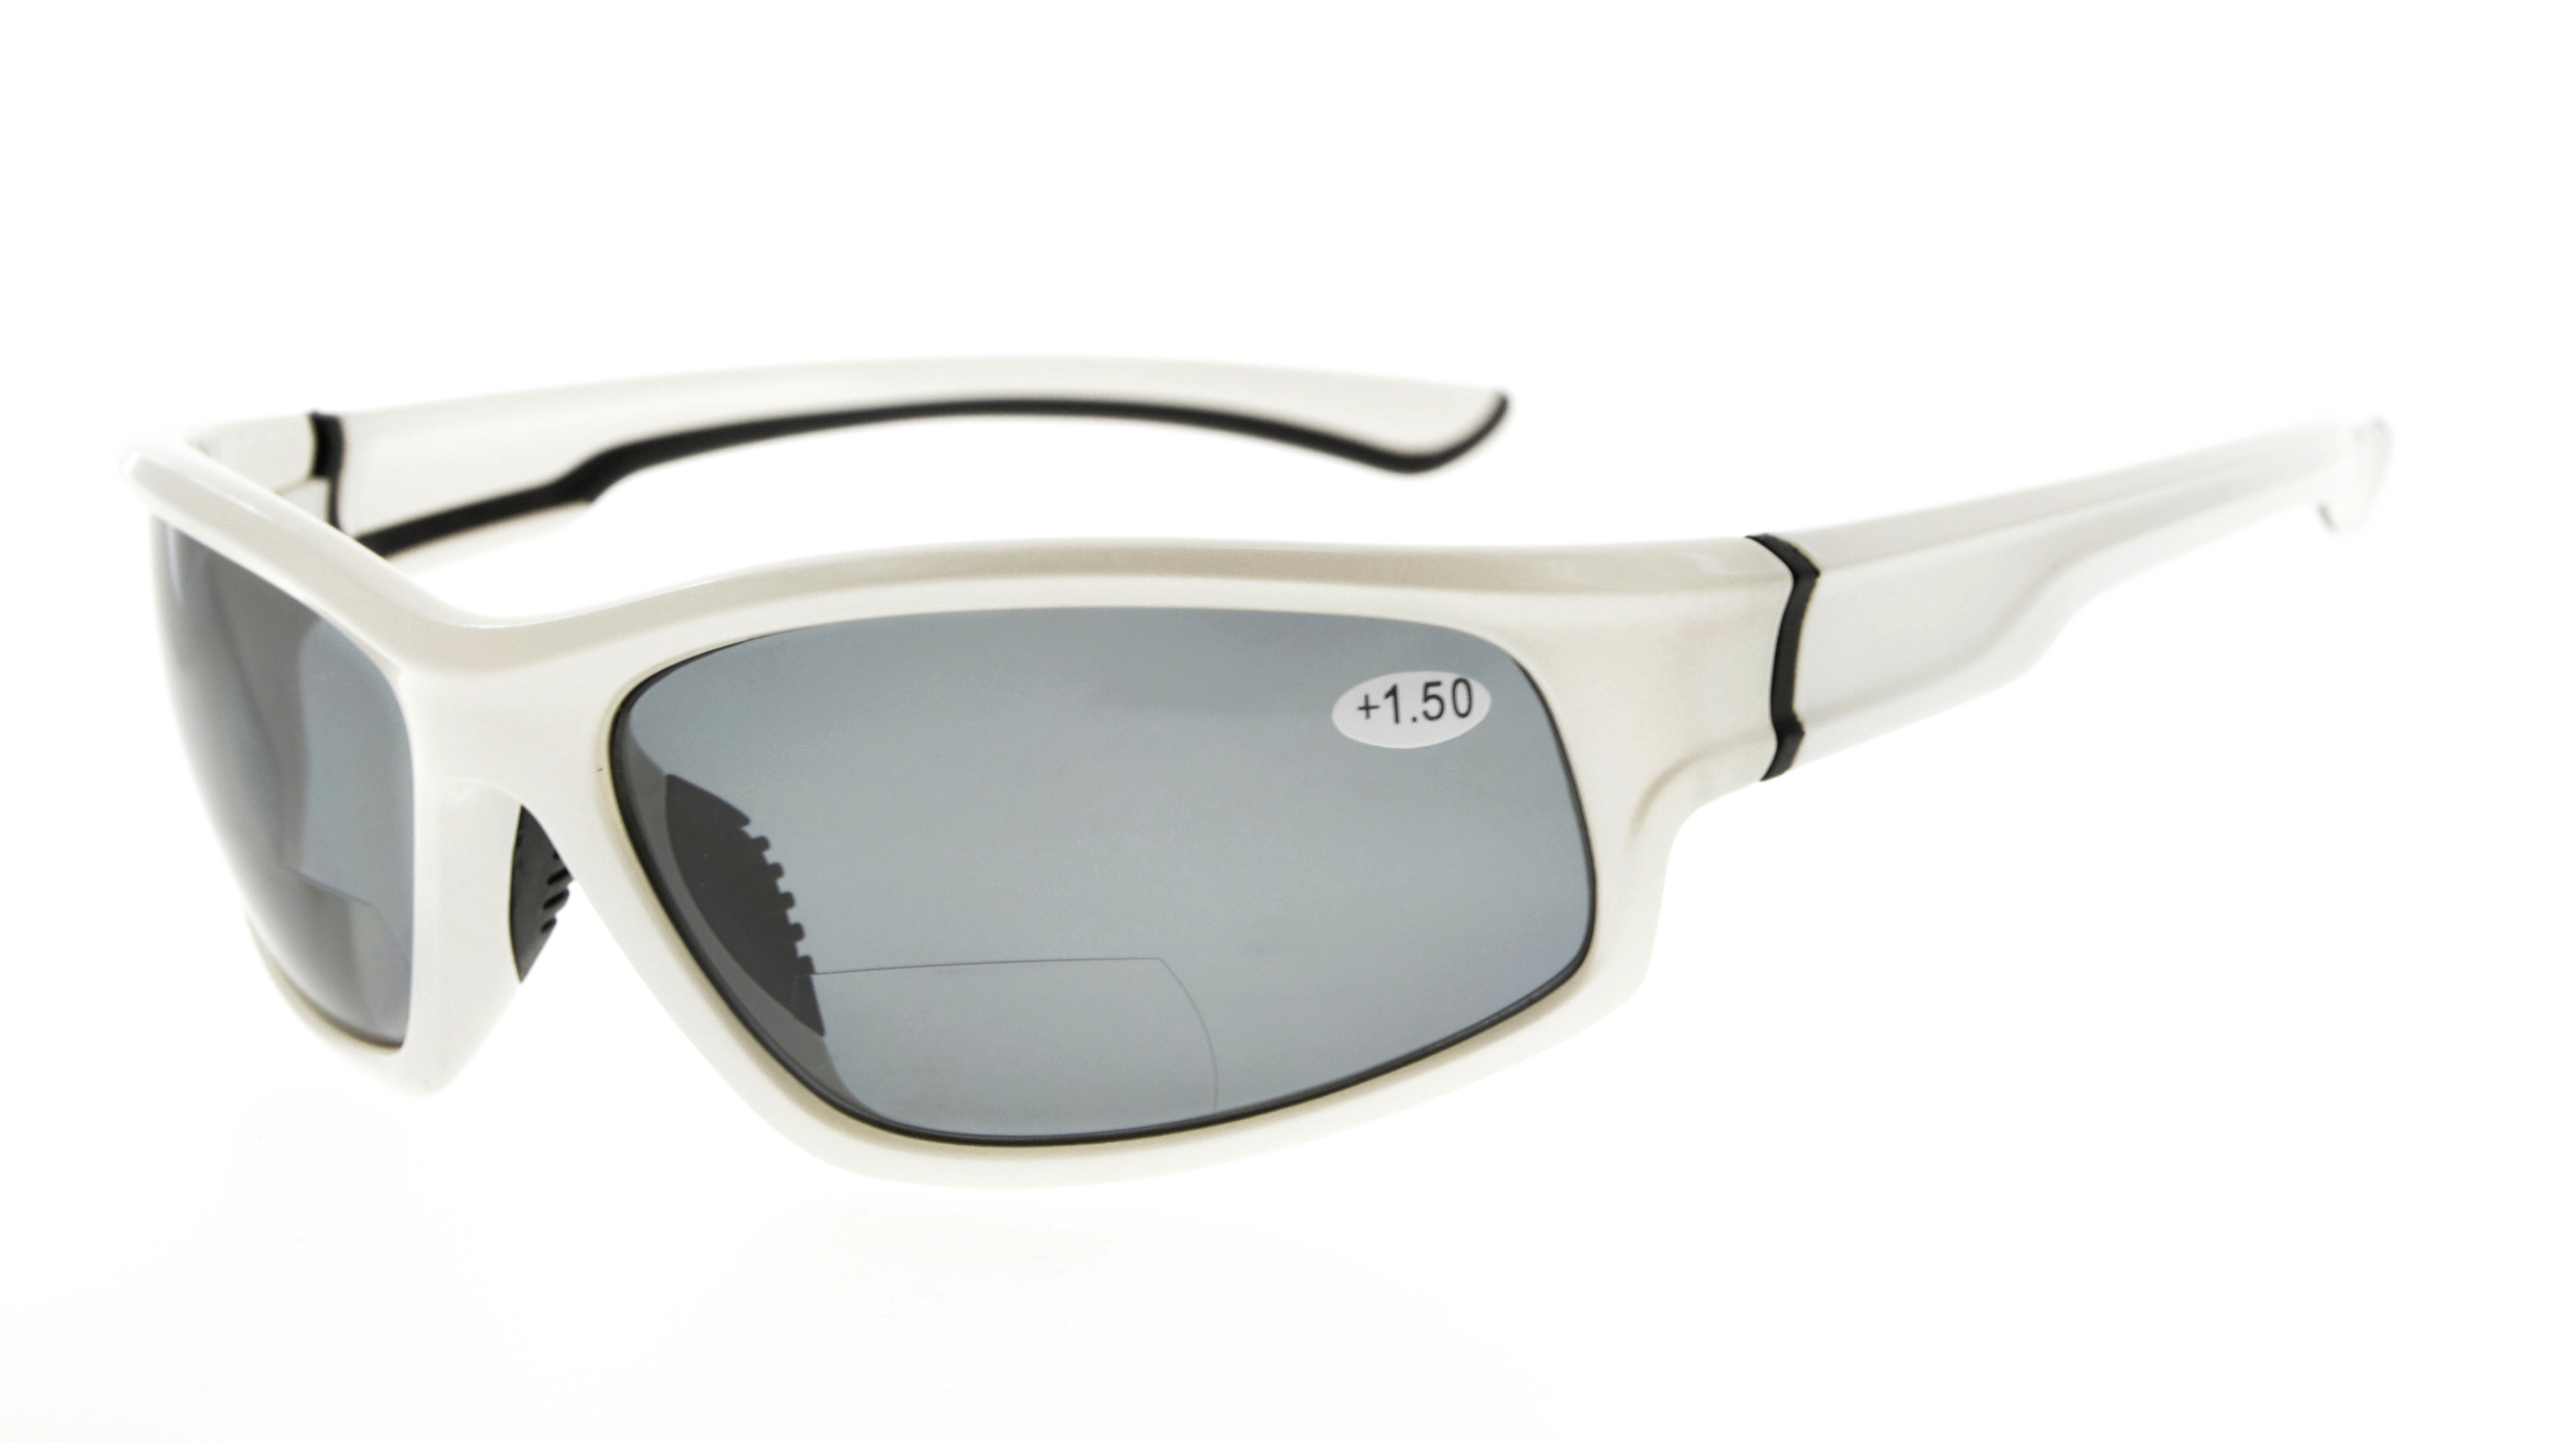 b4b4d940d9 Eyekepper Bifocal Sunglasses with TR90 Frame for Finishing Driving Sports  Cool Style Man TH6199-Bifocal